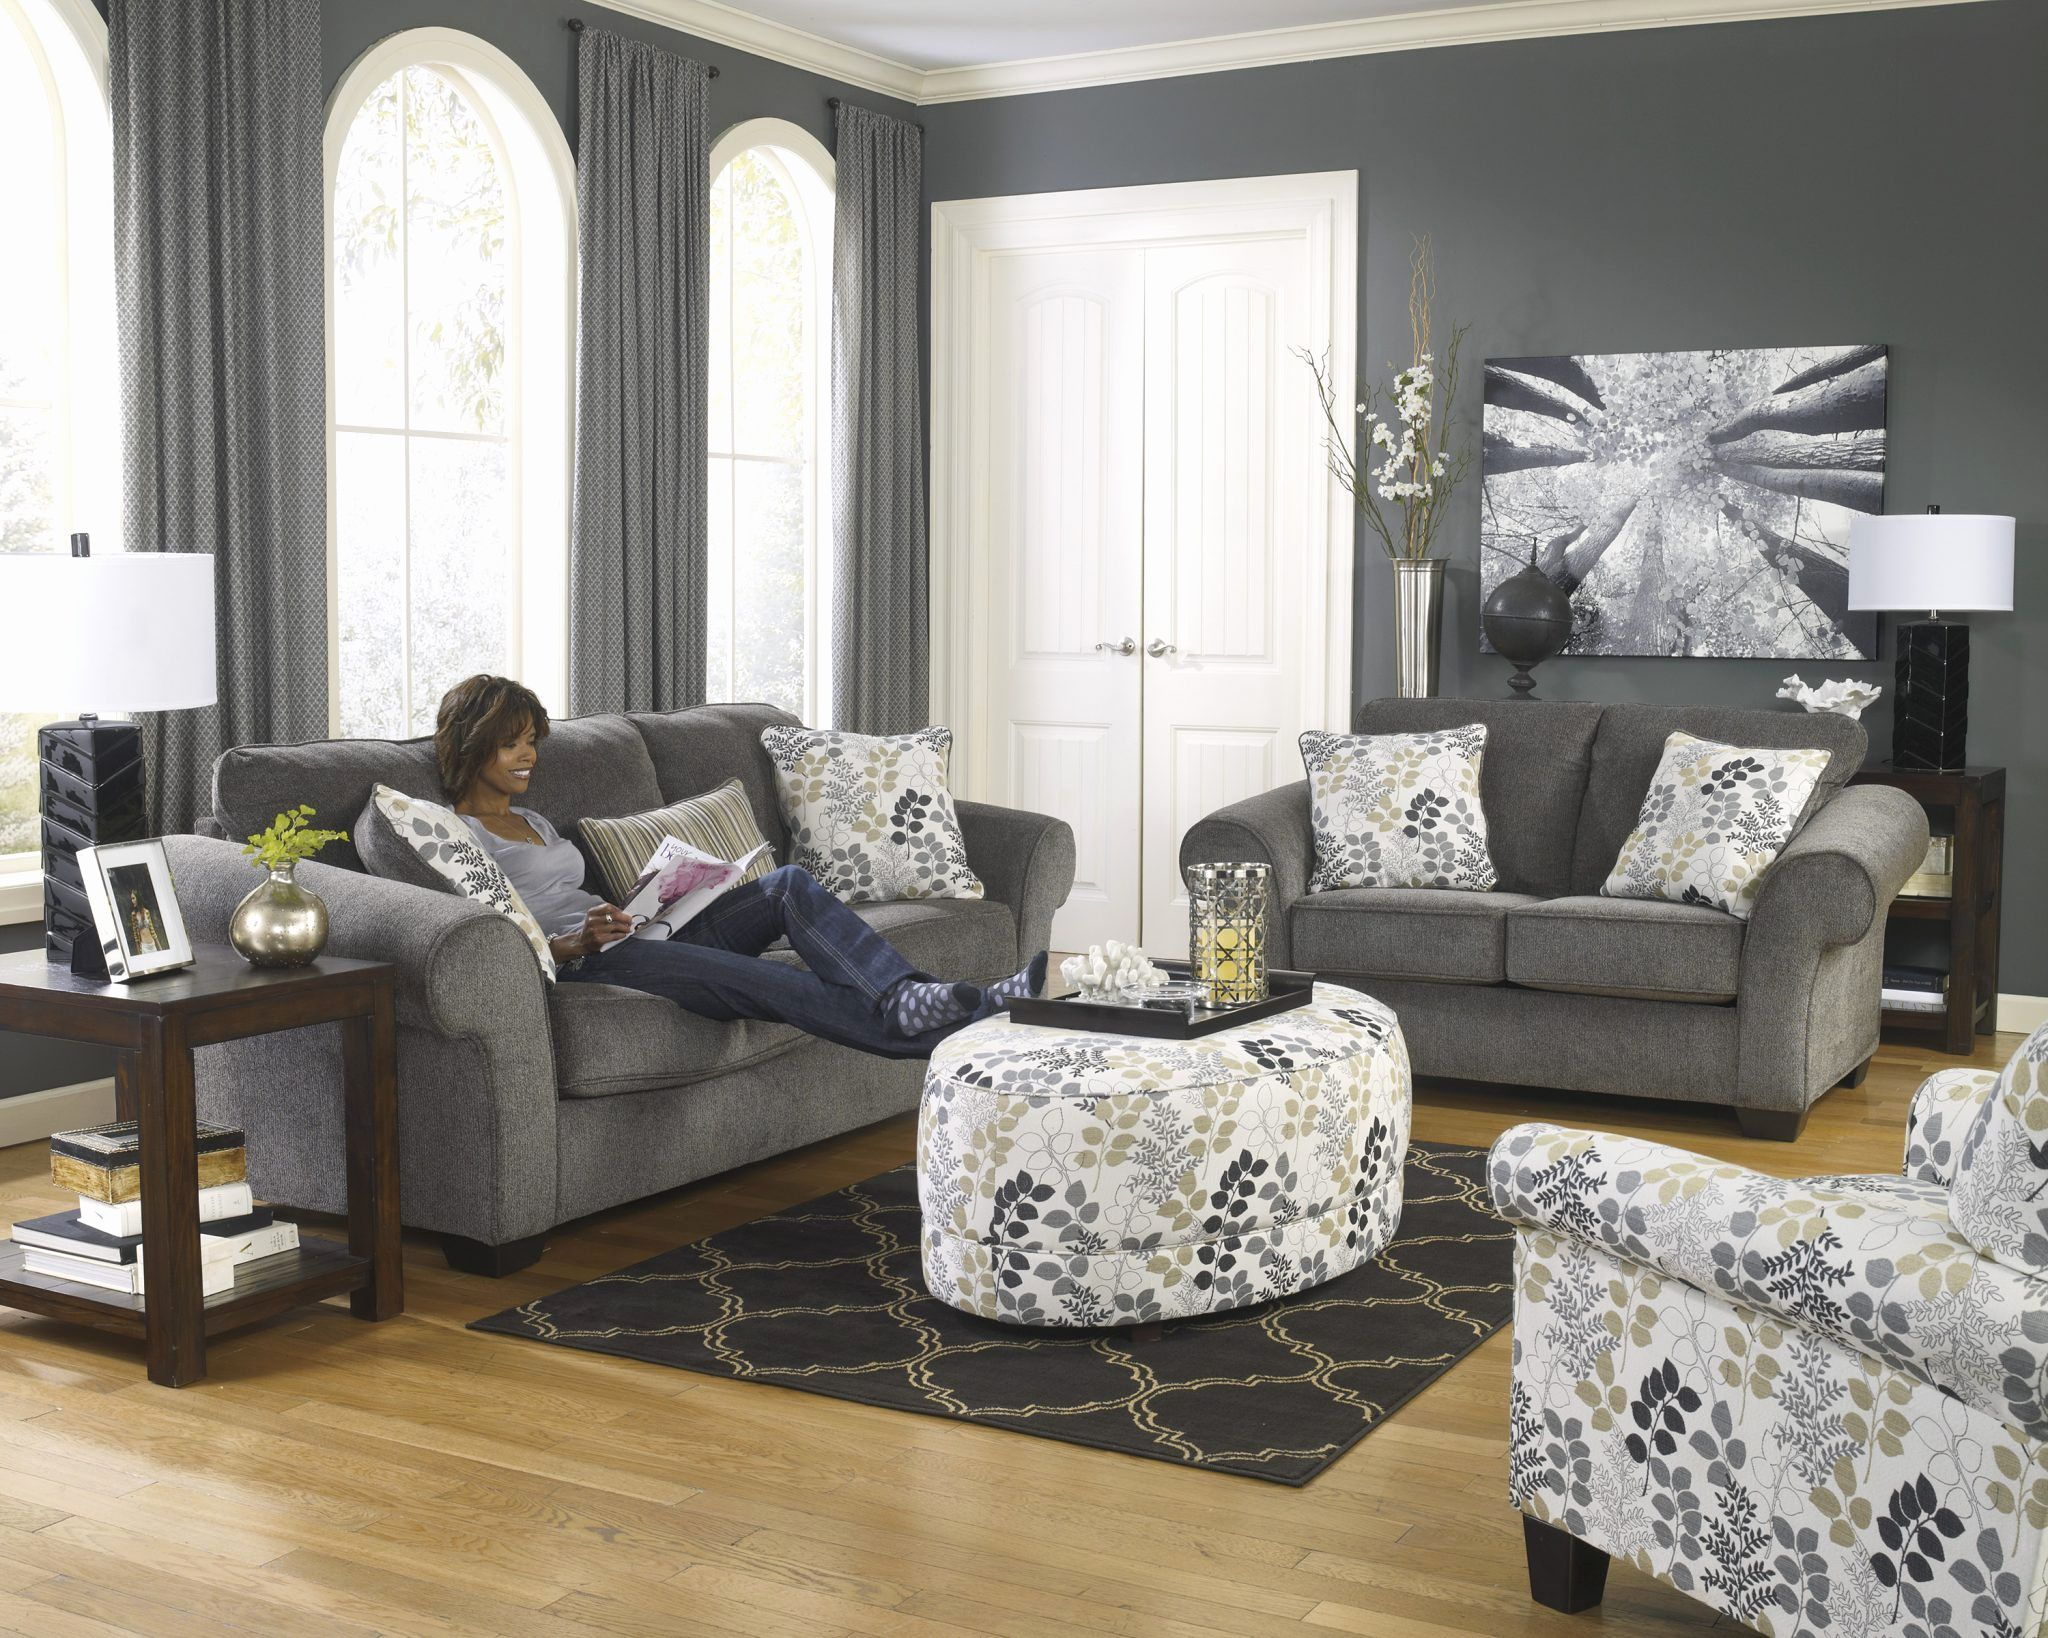 Amazing Grey Sofa And Loveseat Set Photograpy Sofas Magnificent Ashley Furniture Couch